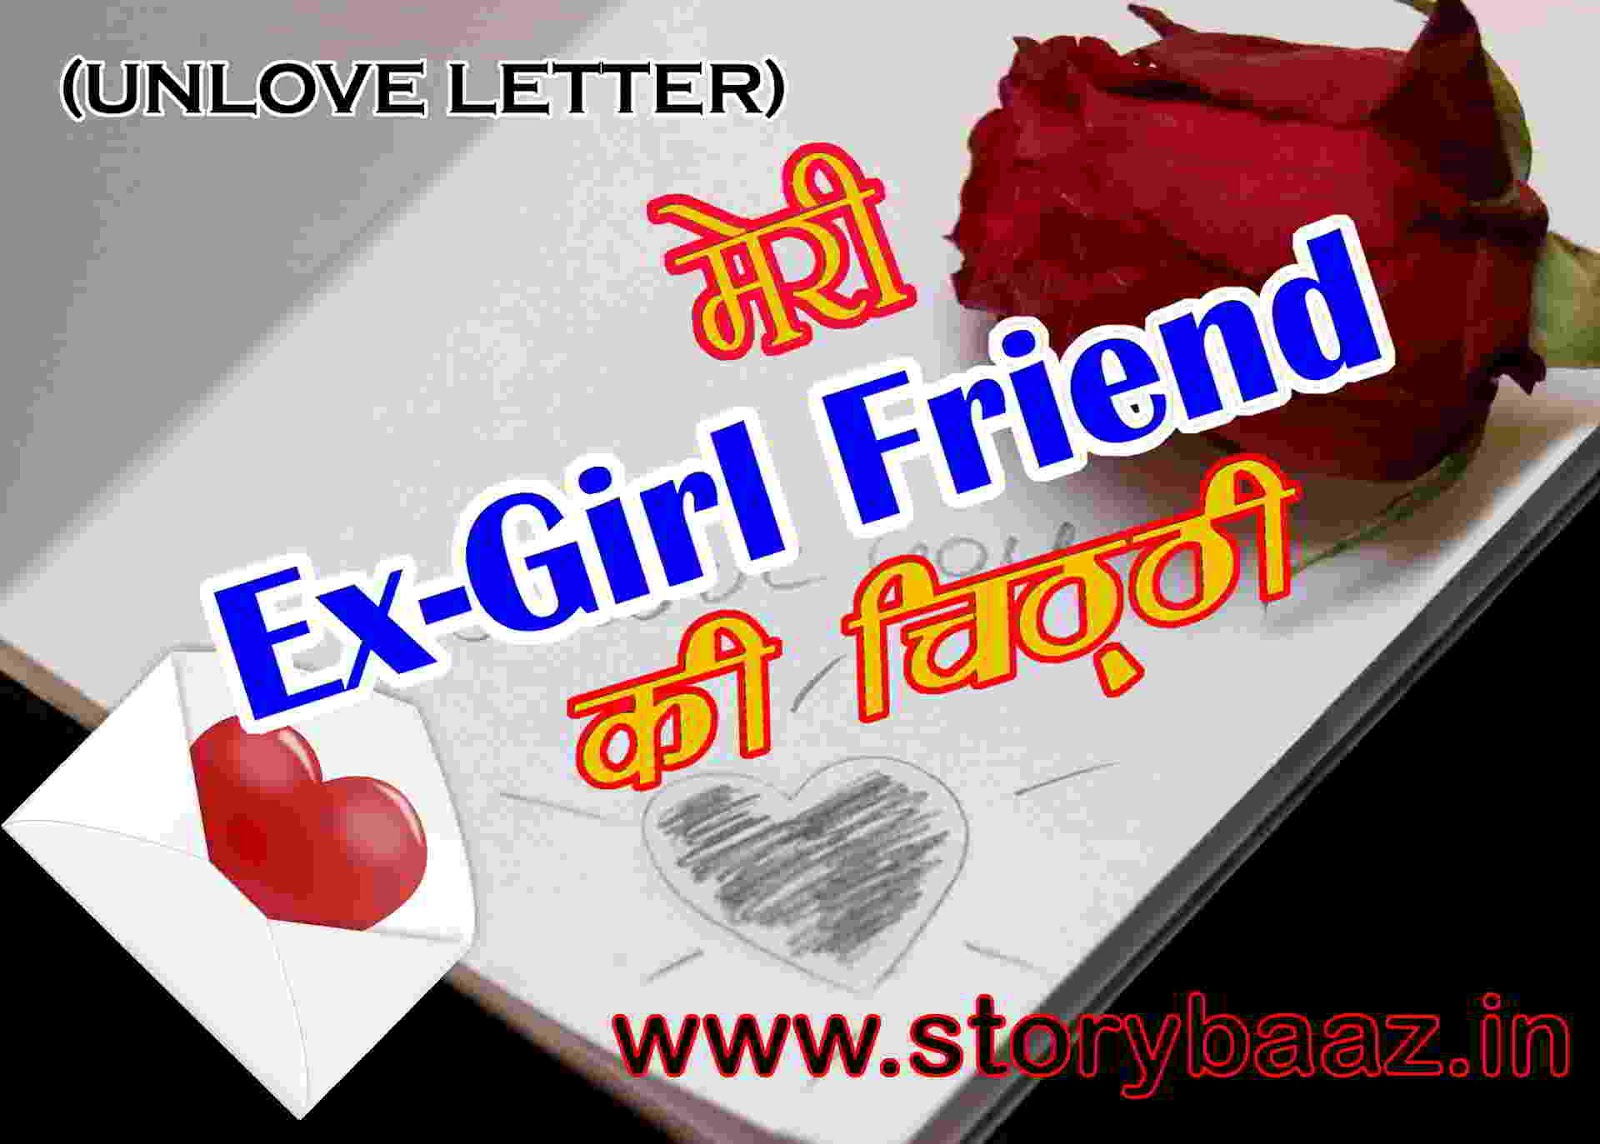 love-letter-in-hindi-images-jpg-new-love-letter-meri-ex-girl-friend-ki-chiththi-new-love-letter-photo-hindi-me-love-letter-letter-for-ex-girl-friend-storybaaz.in-storybaaz